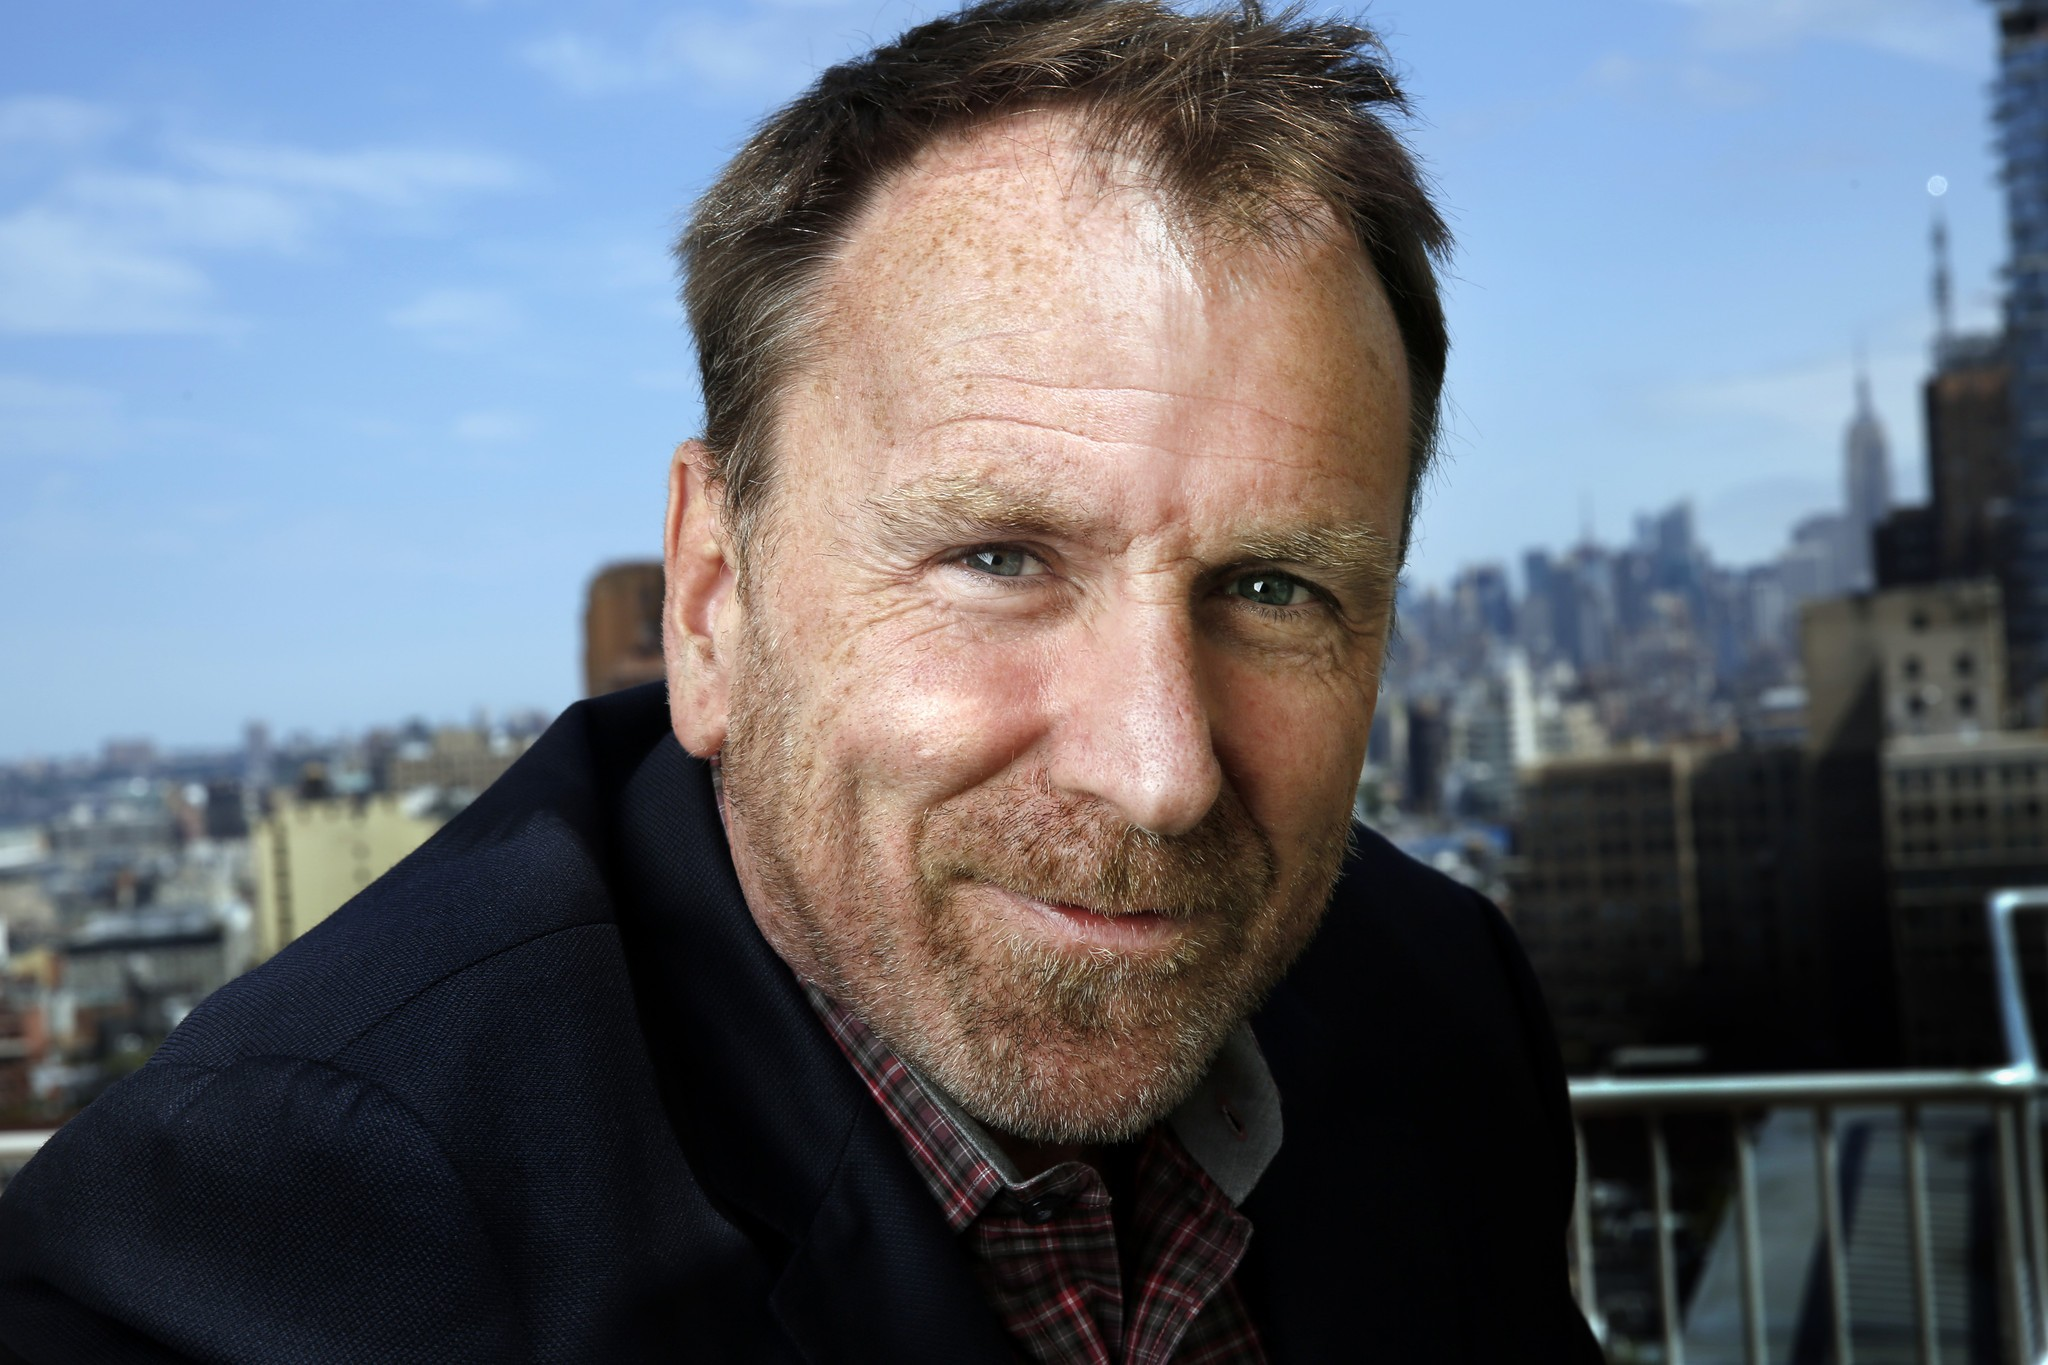 On His First Standup Tour In 7 Years Comedian Colin Quinn